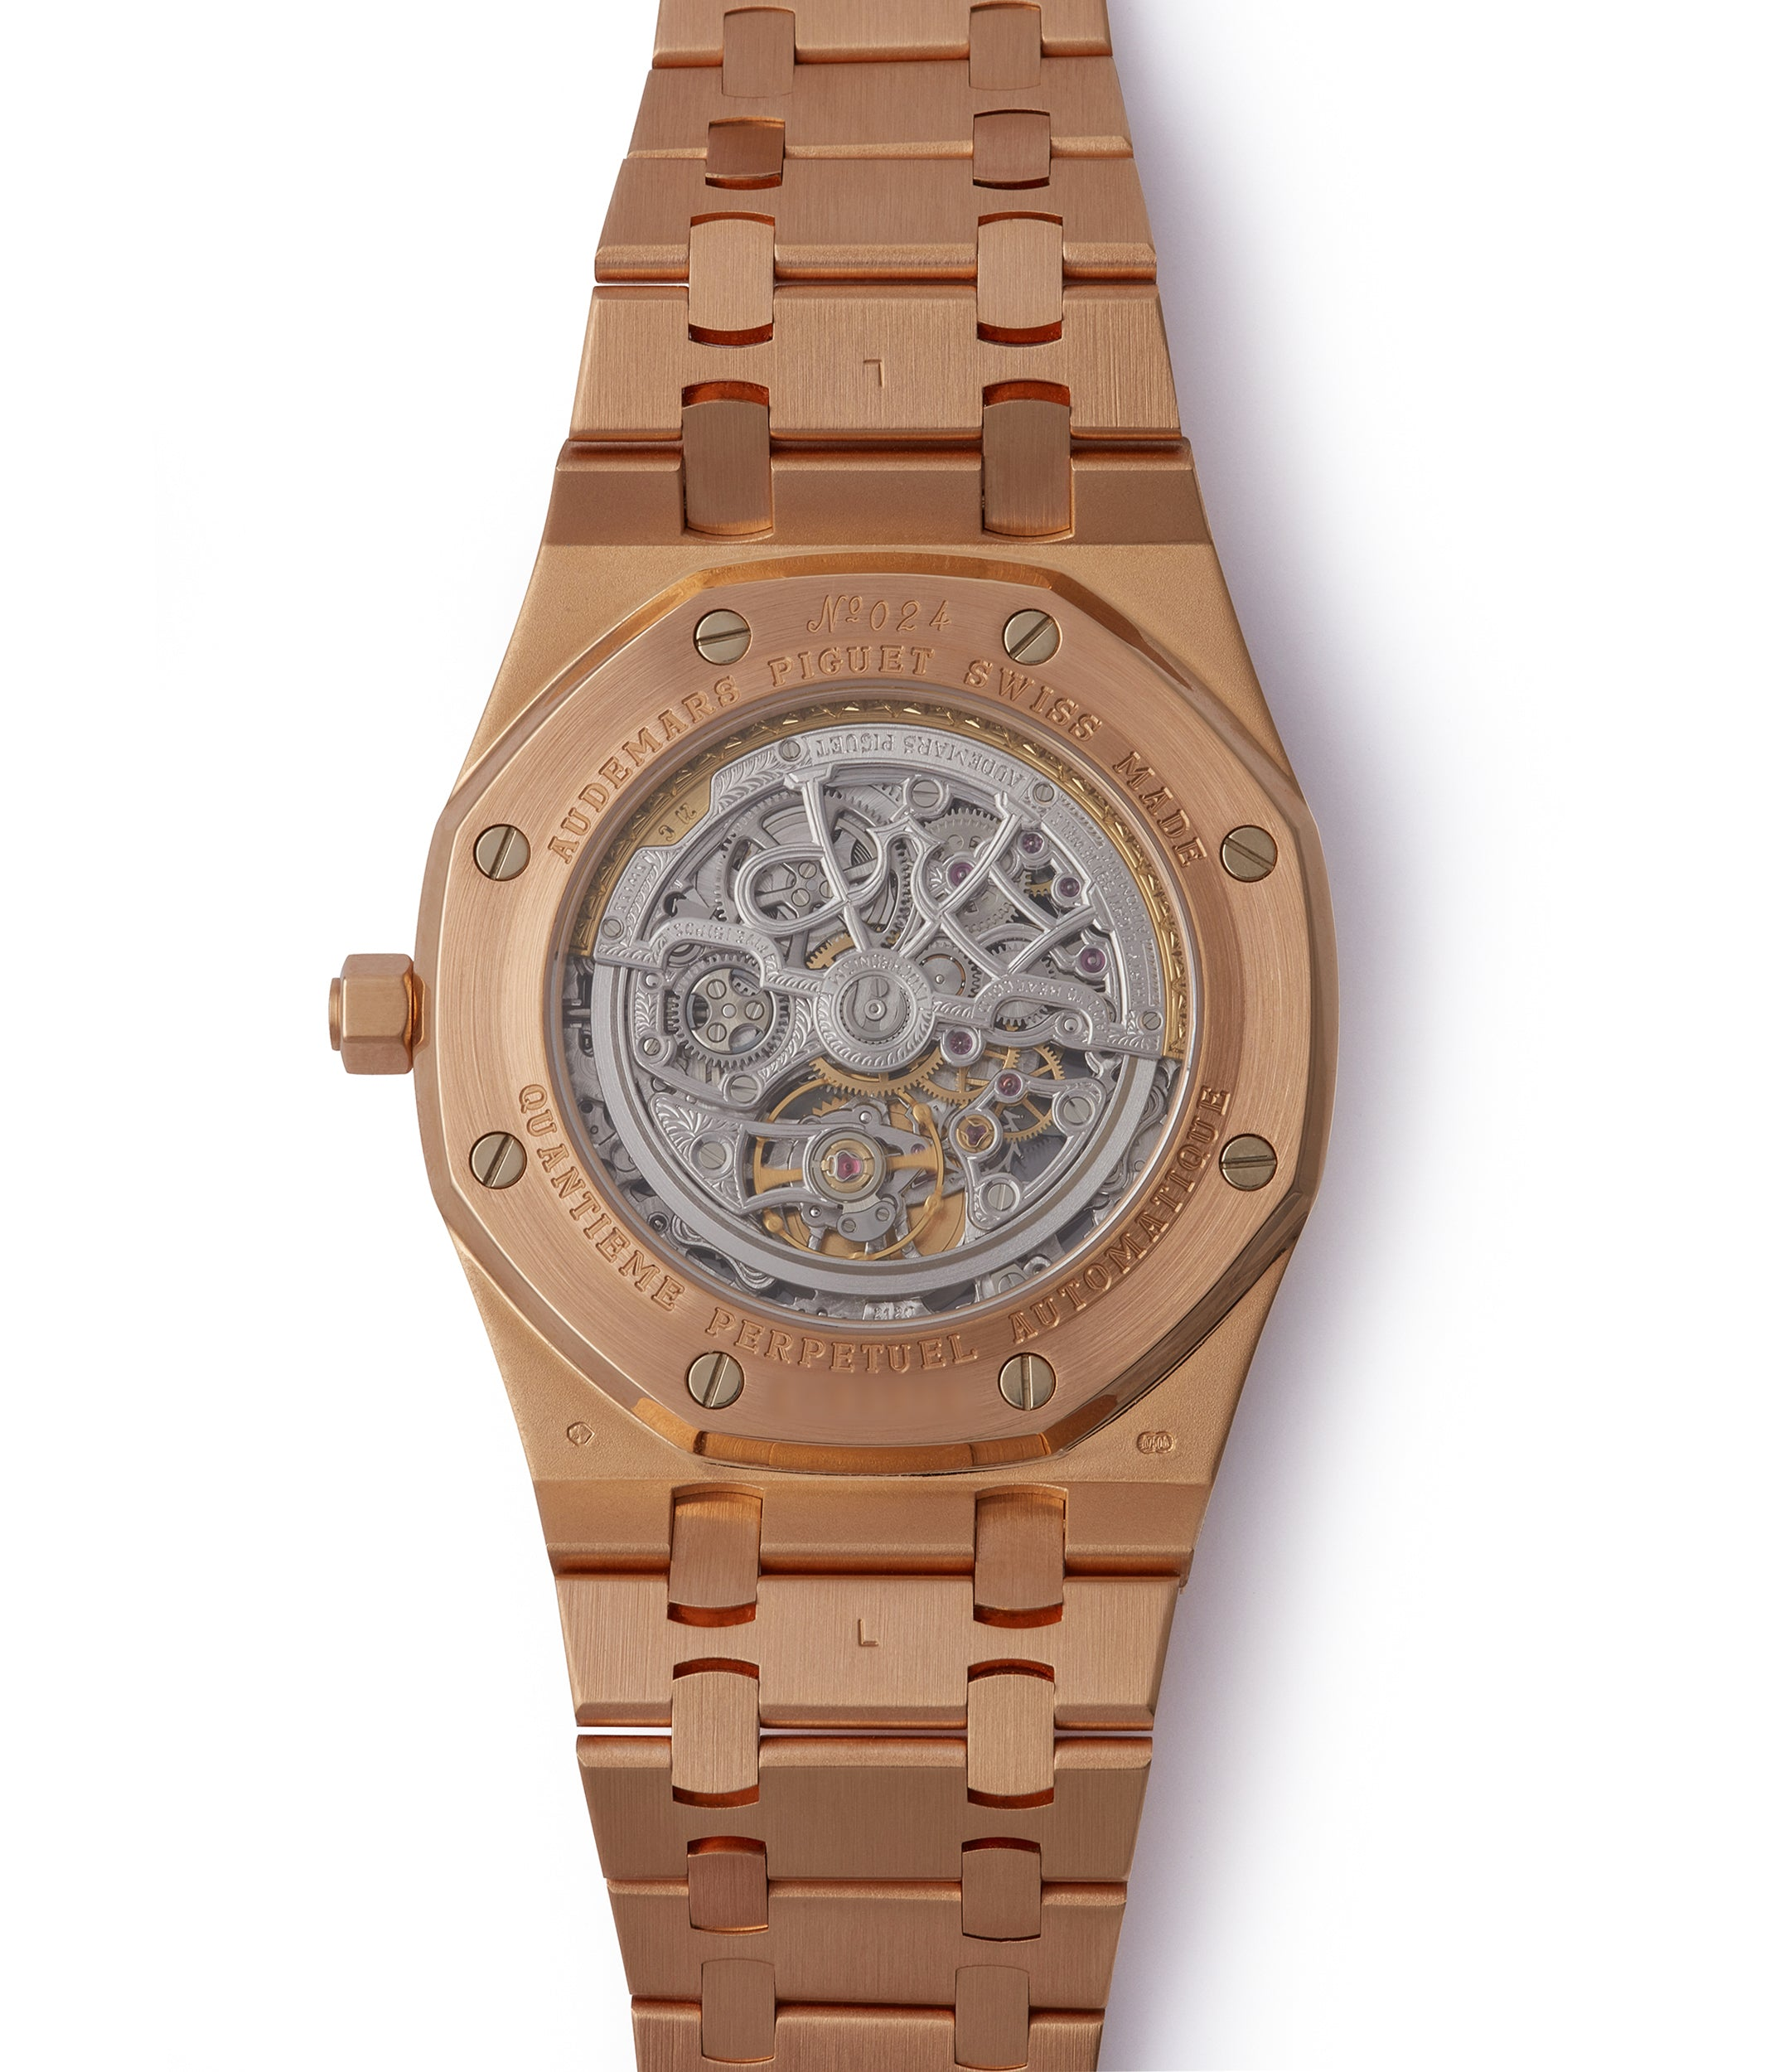 automatic Audemars Piguet Royal Oak Quantieme Perpetual Calendar 25829OR rose gold skeletonised pre-owned sport watch for sale online at A Collected Man London UK specialist of rare watches